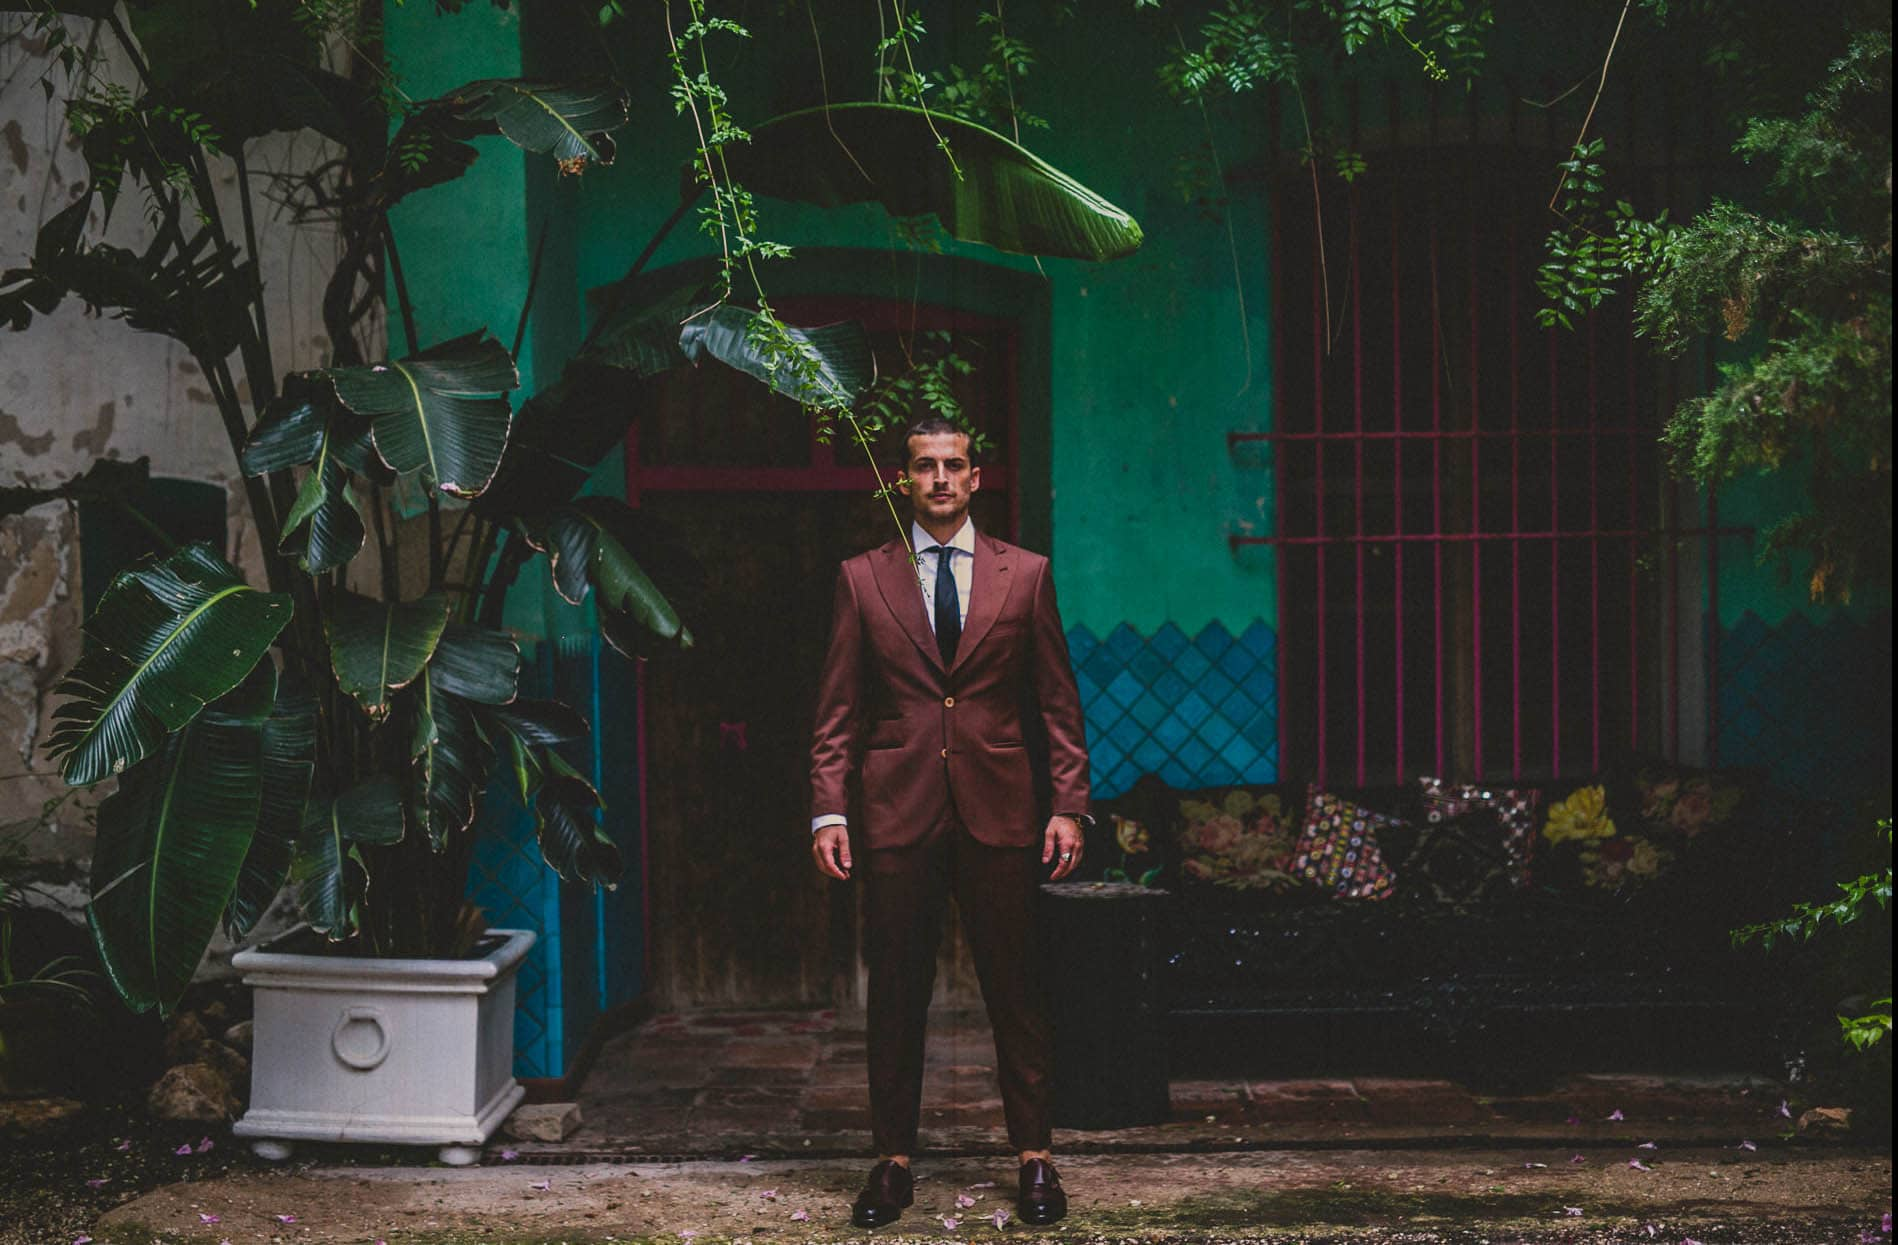 portrait of a groom between big plants